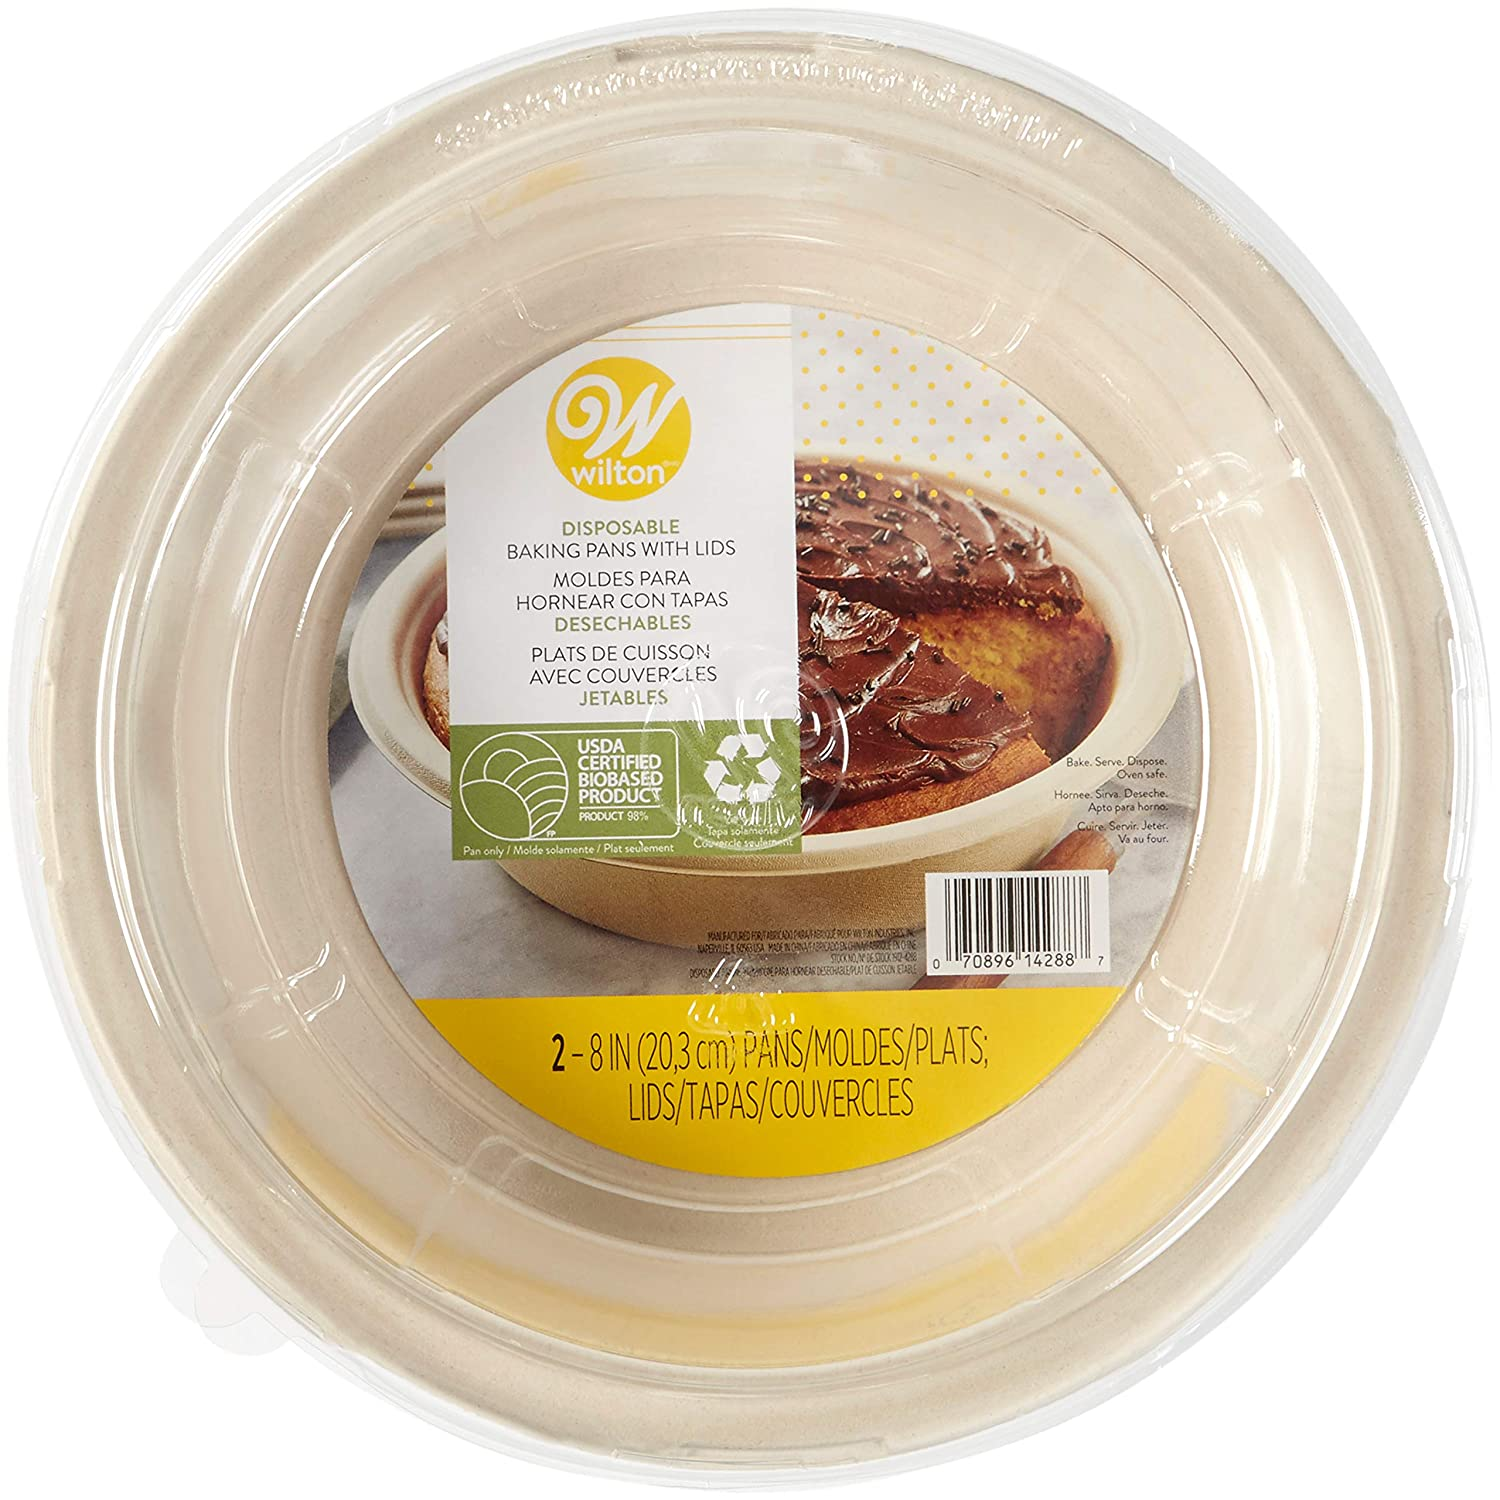 Amazon.com: Wilton Disposable Round Baking Pans With Lids, 6-Count: Kitchen & Dining